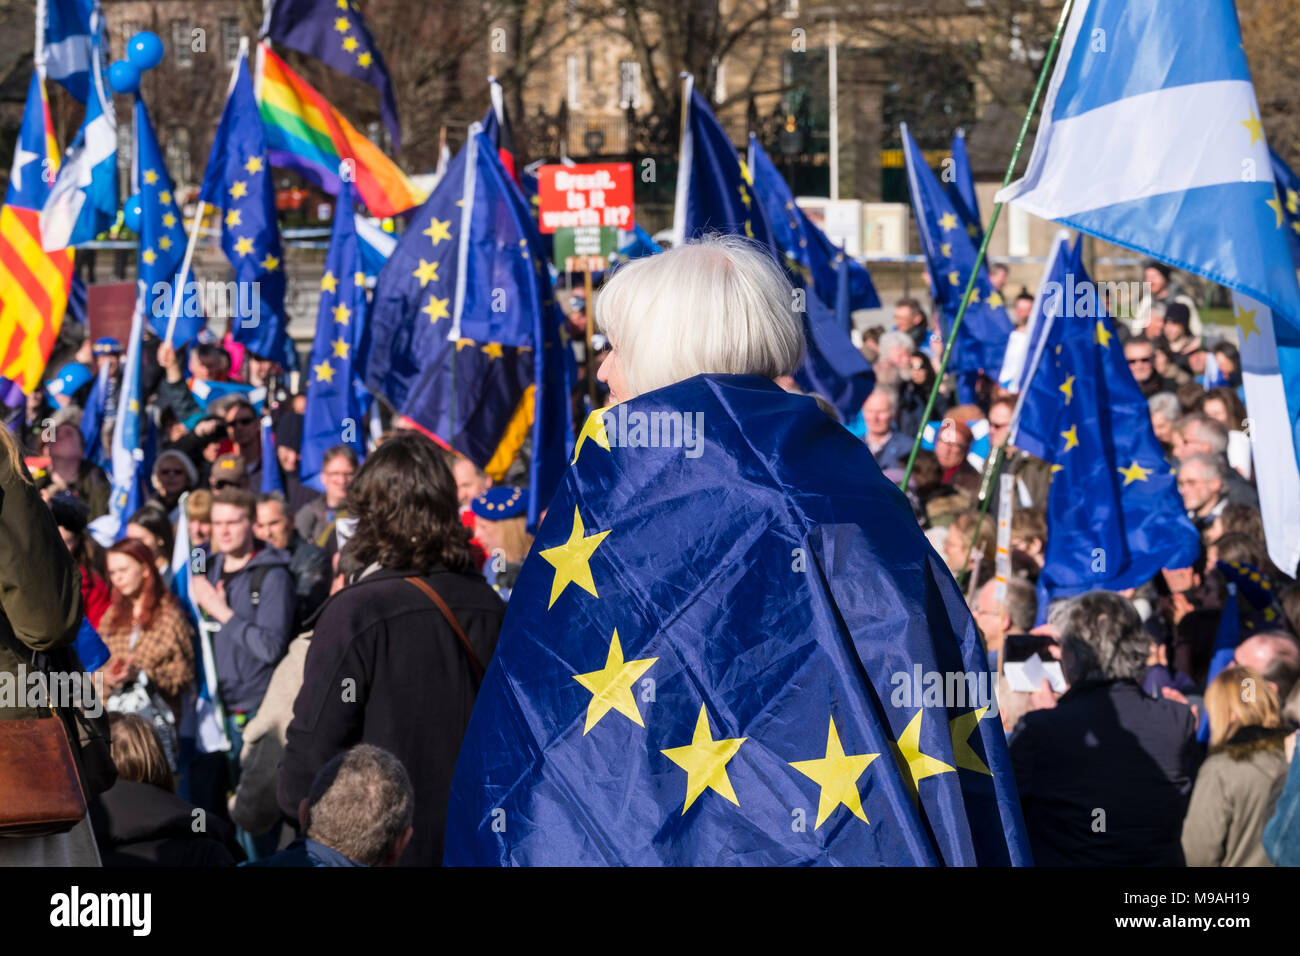 Edinburgh, Scotland,UK. 24 March 2018. March for Europe: Democracy on Brexit march and demonstration outside the Scottish Parliament at Holyrood today.  Large crowd of pro-Europe anti-Brexit protestors met to listen to speeches. Credit: Iain Masterton/Alamy Live News - Stock Image